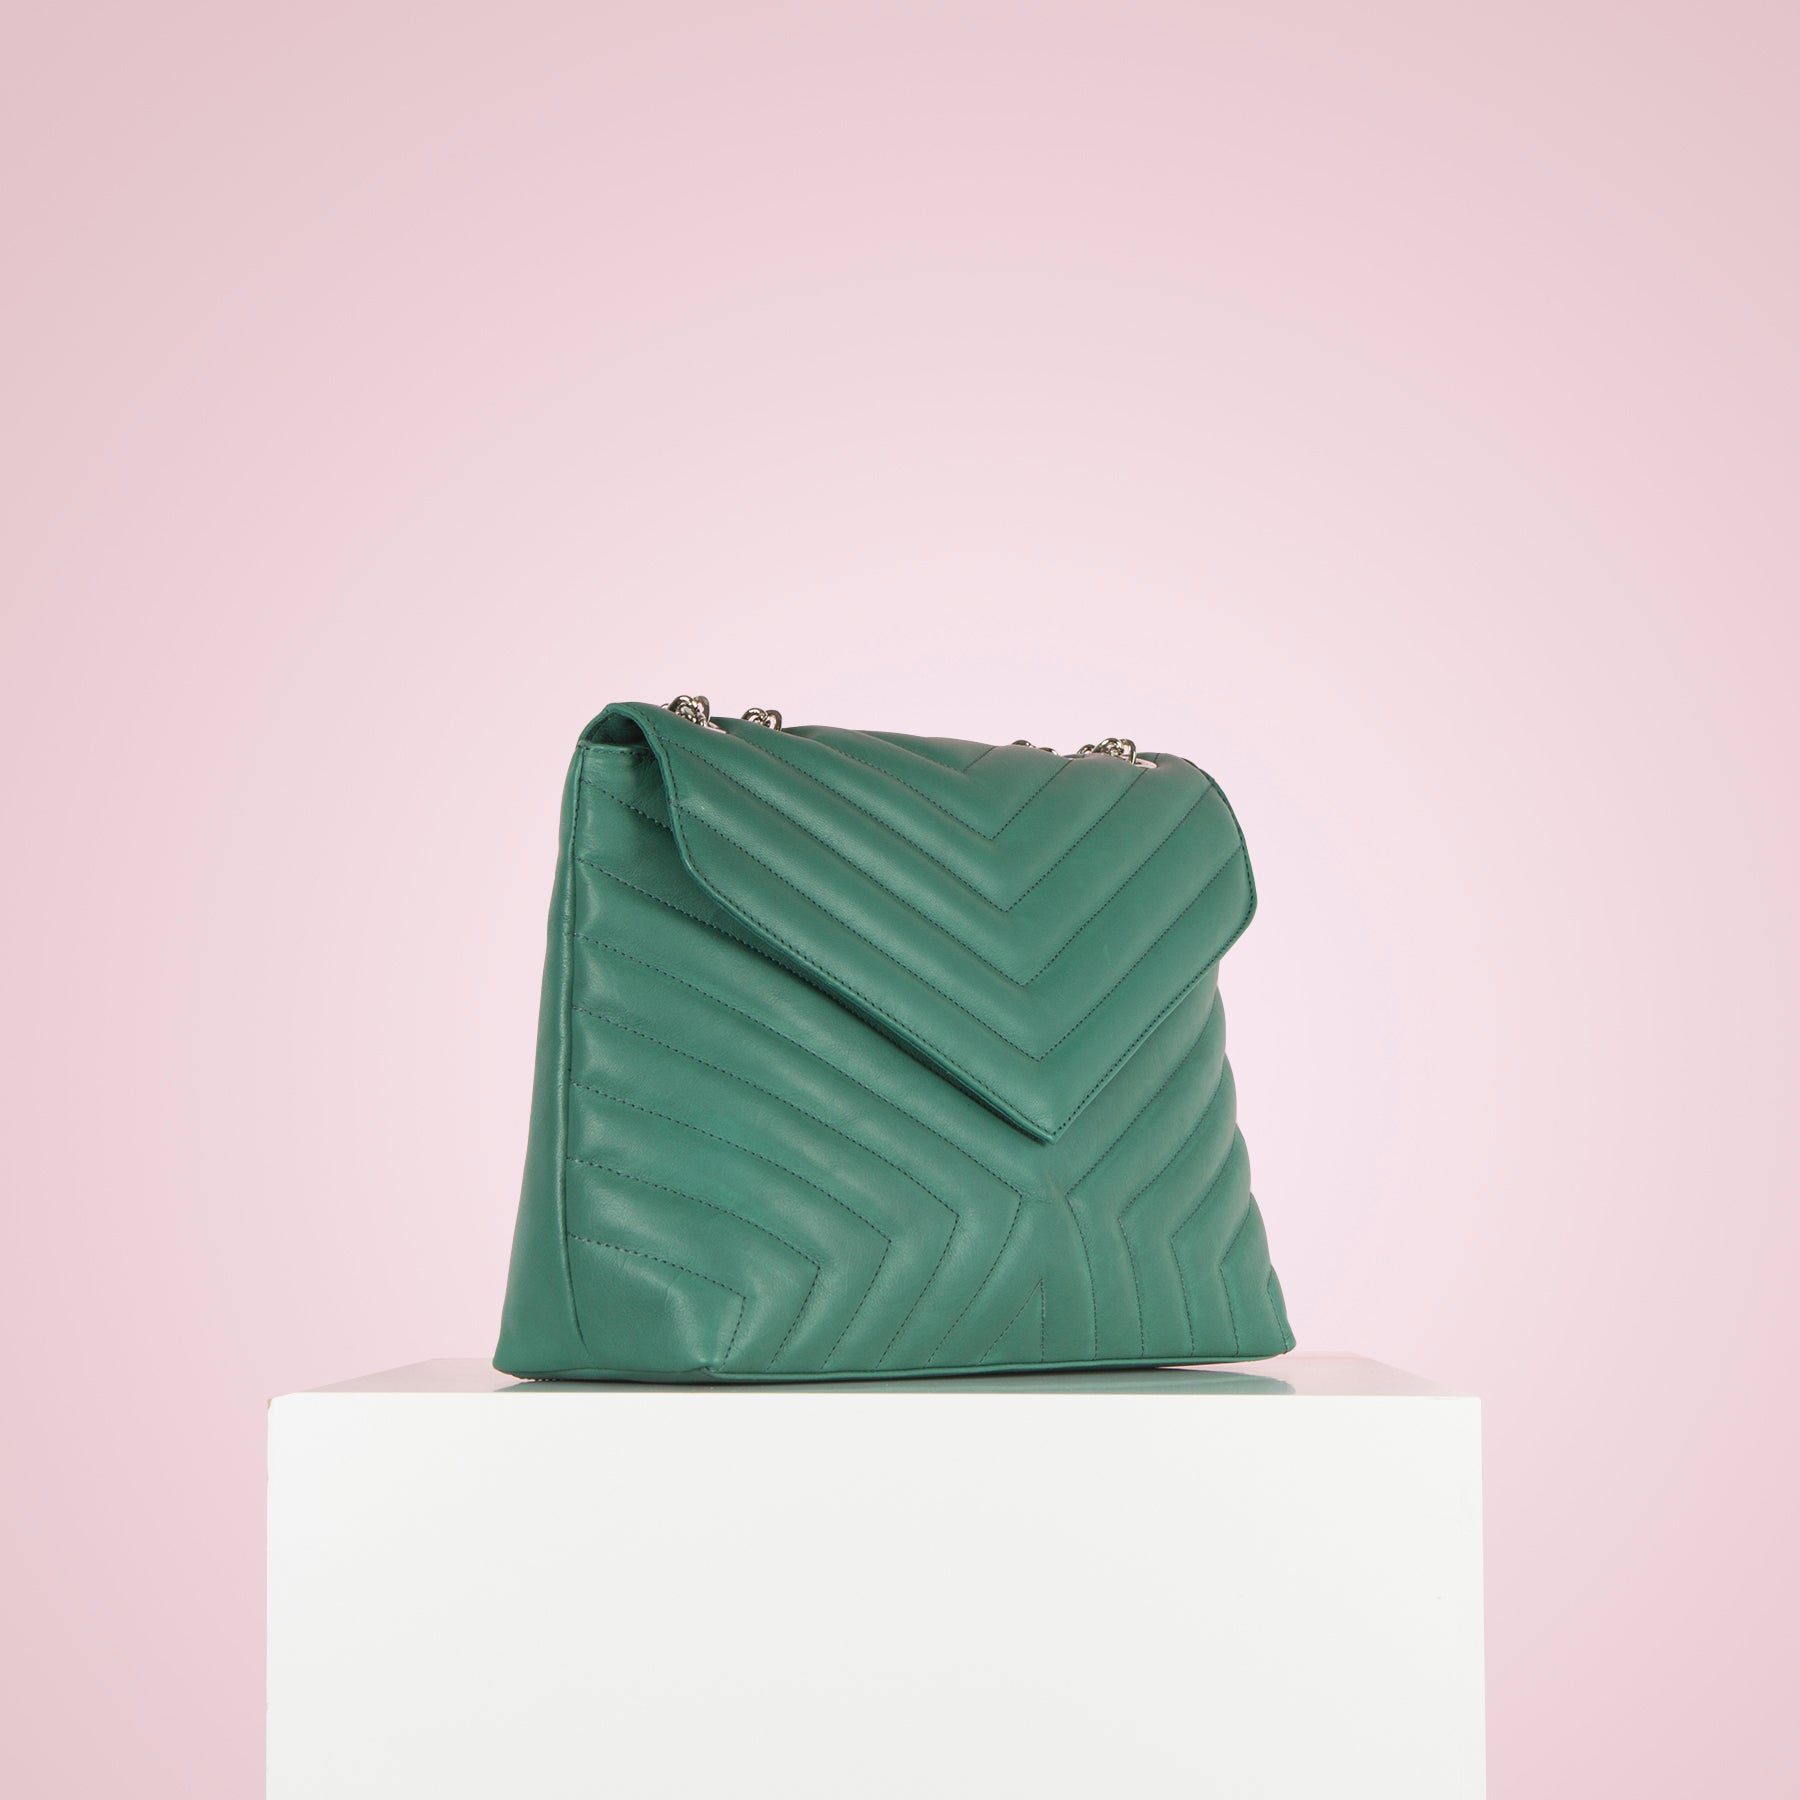 Melpo Green Leather